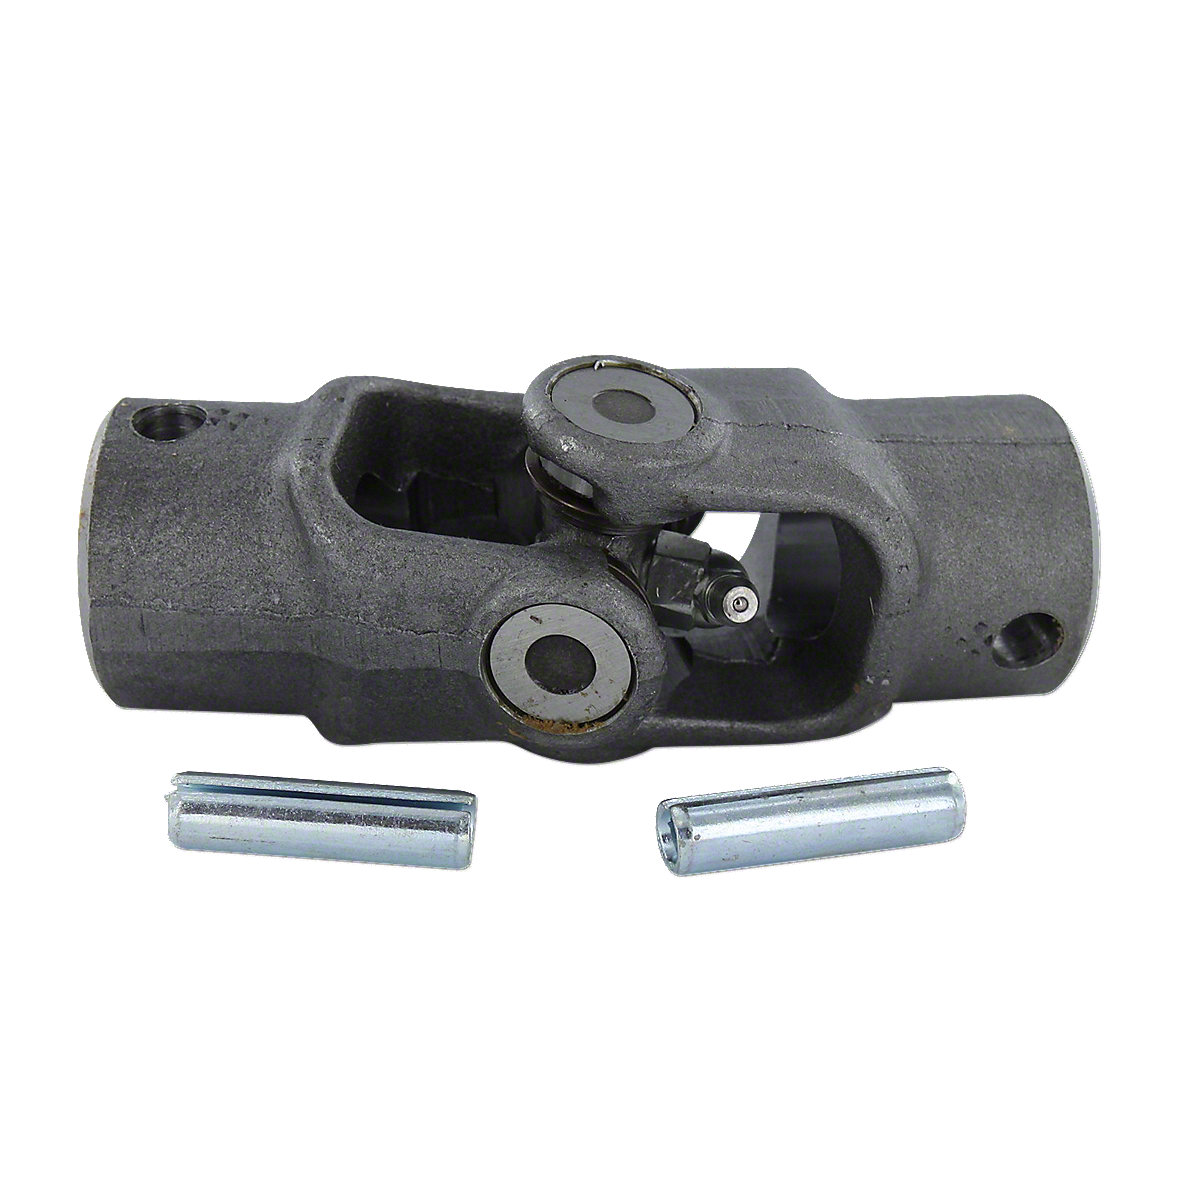 ABC166 Universal Steering Joints Repair Kit